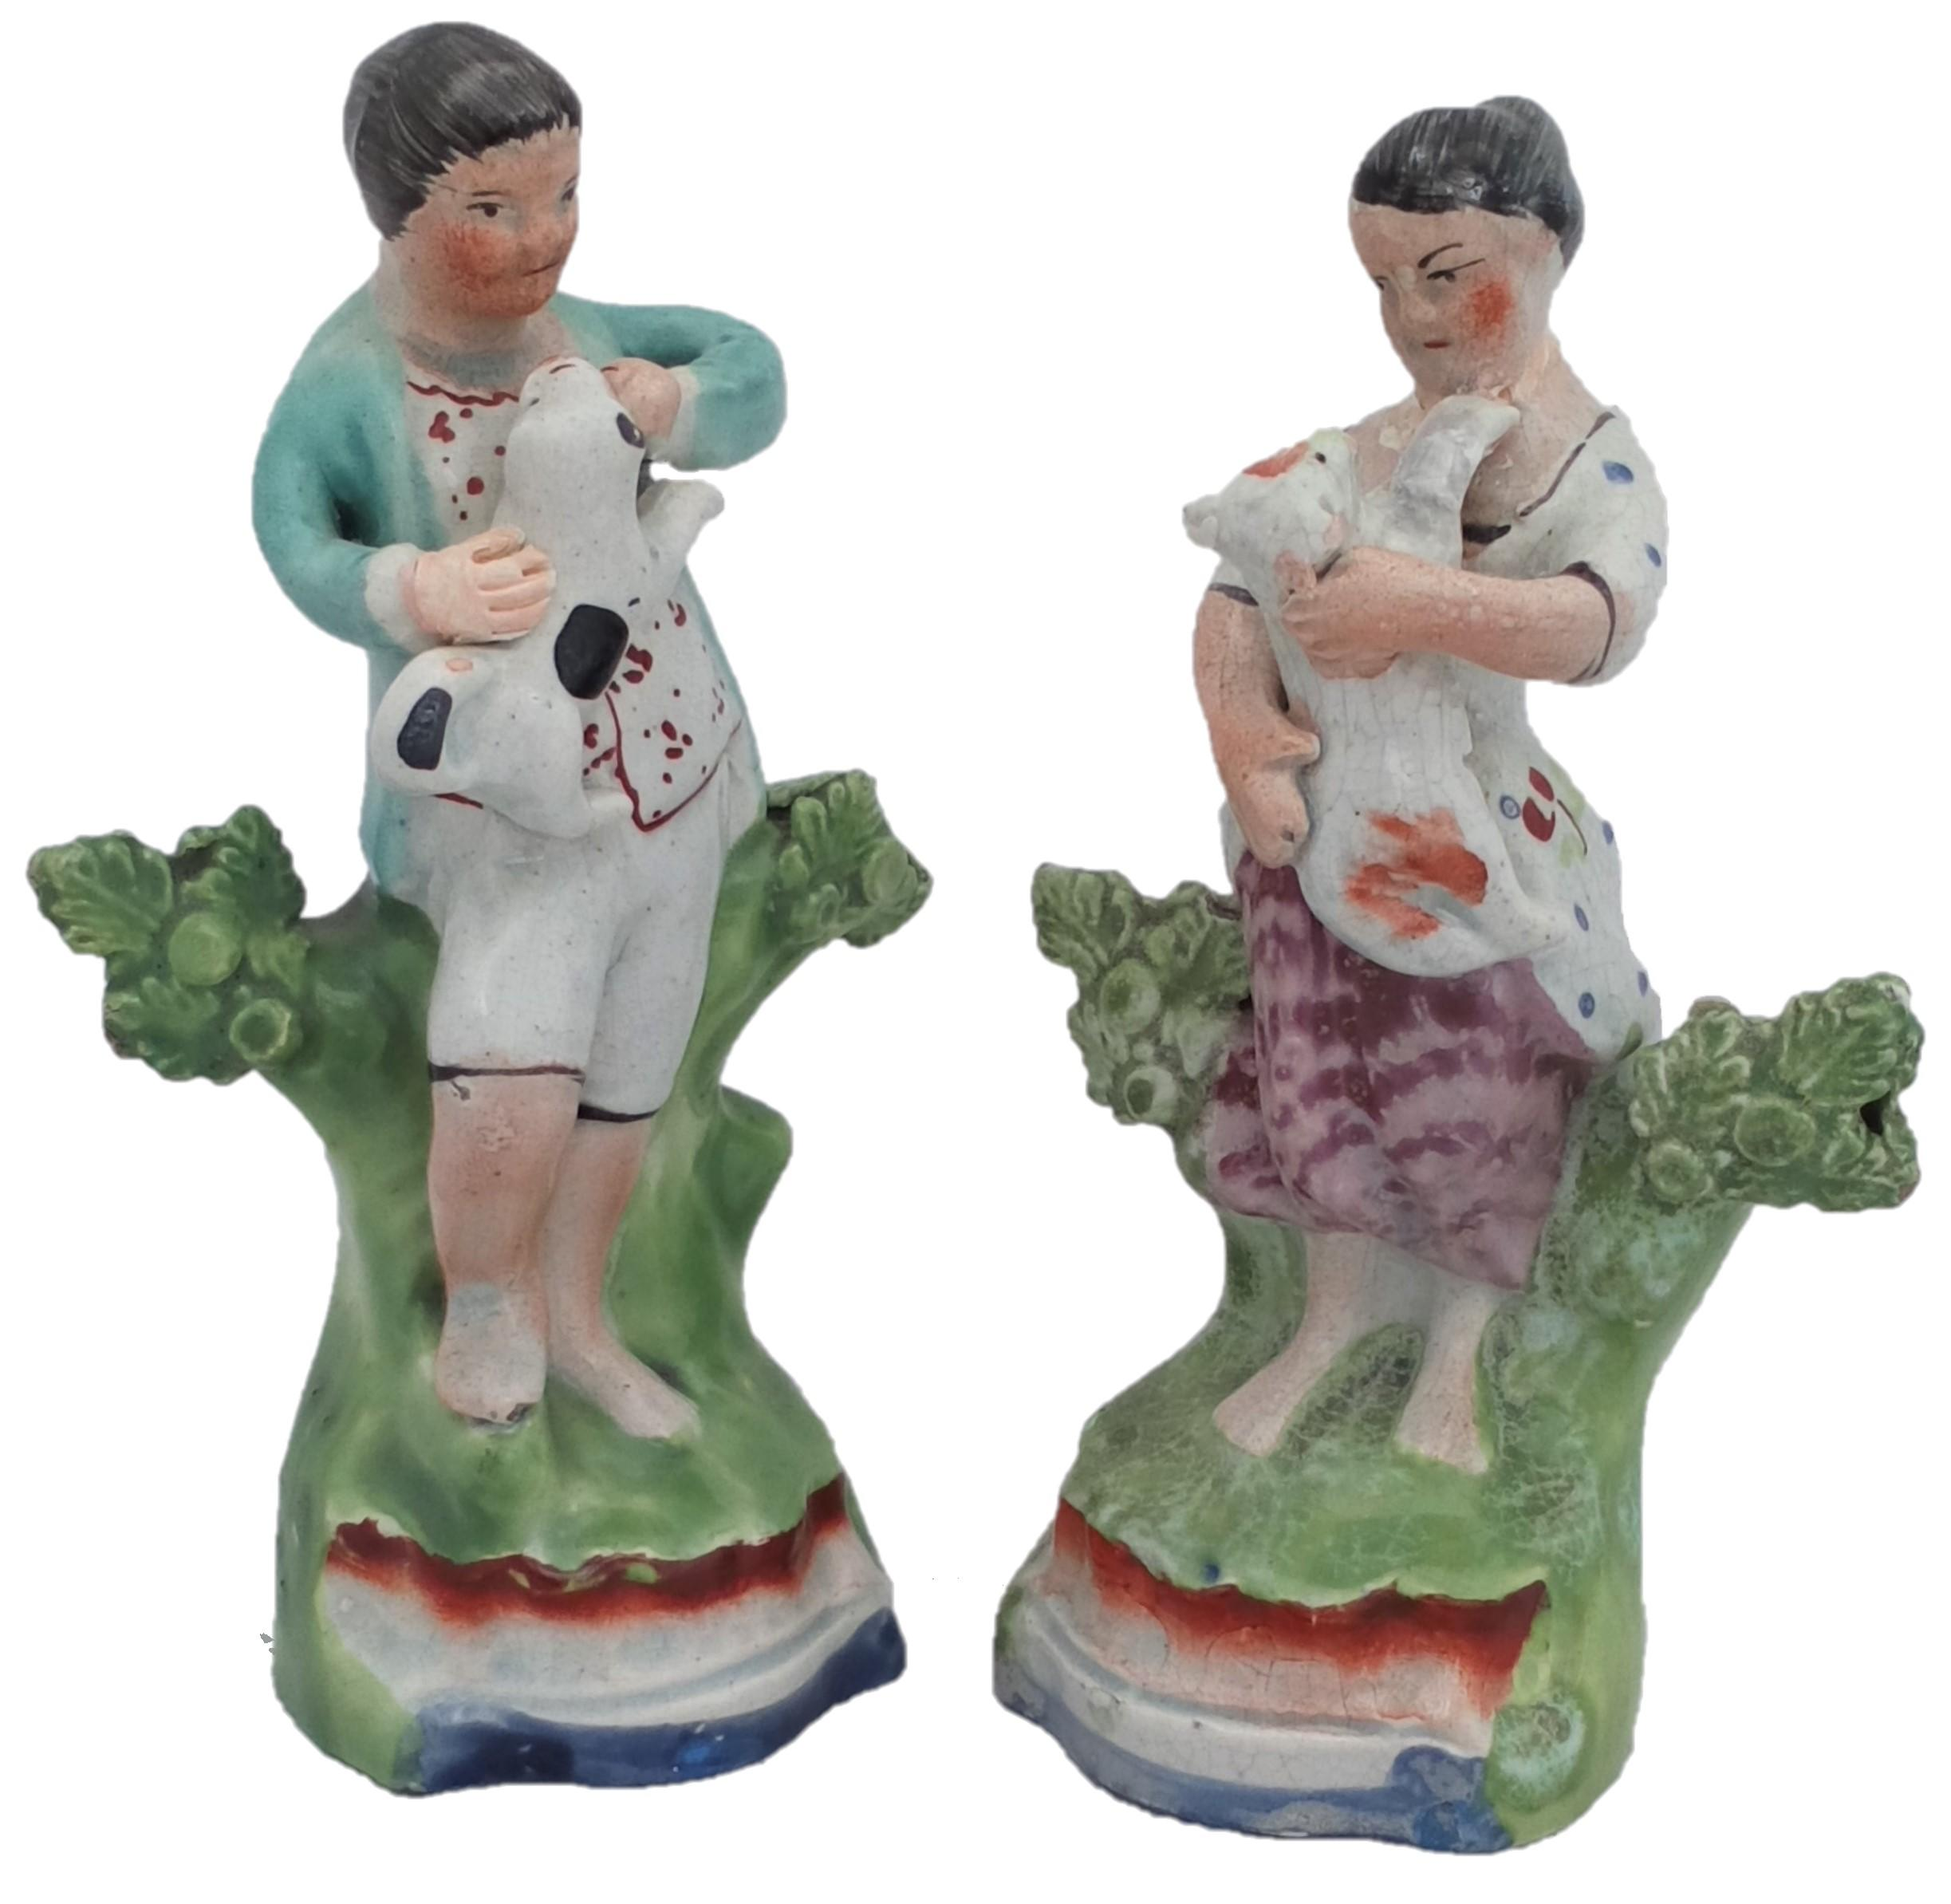 Antique Pair of Enamelled Pearlware Sherratt Style Bocage Figurines of Shepherd with Dog and Shepherdess with lamb circa 1820